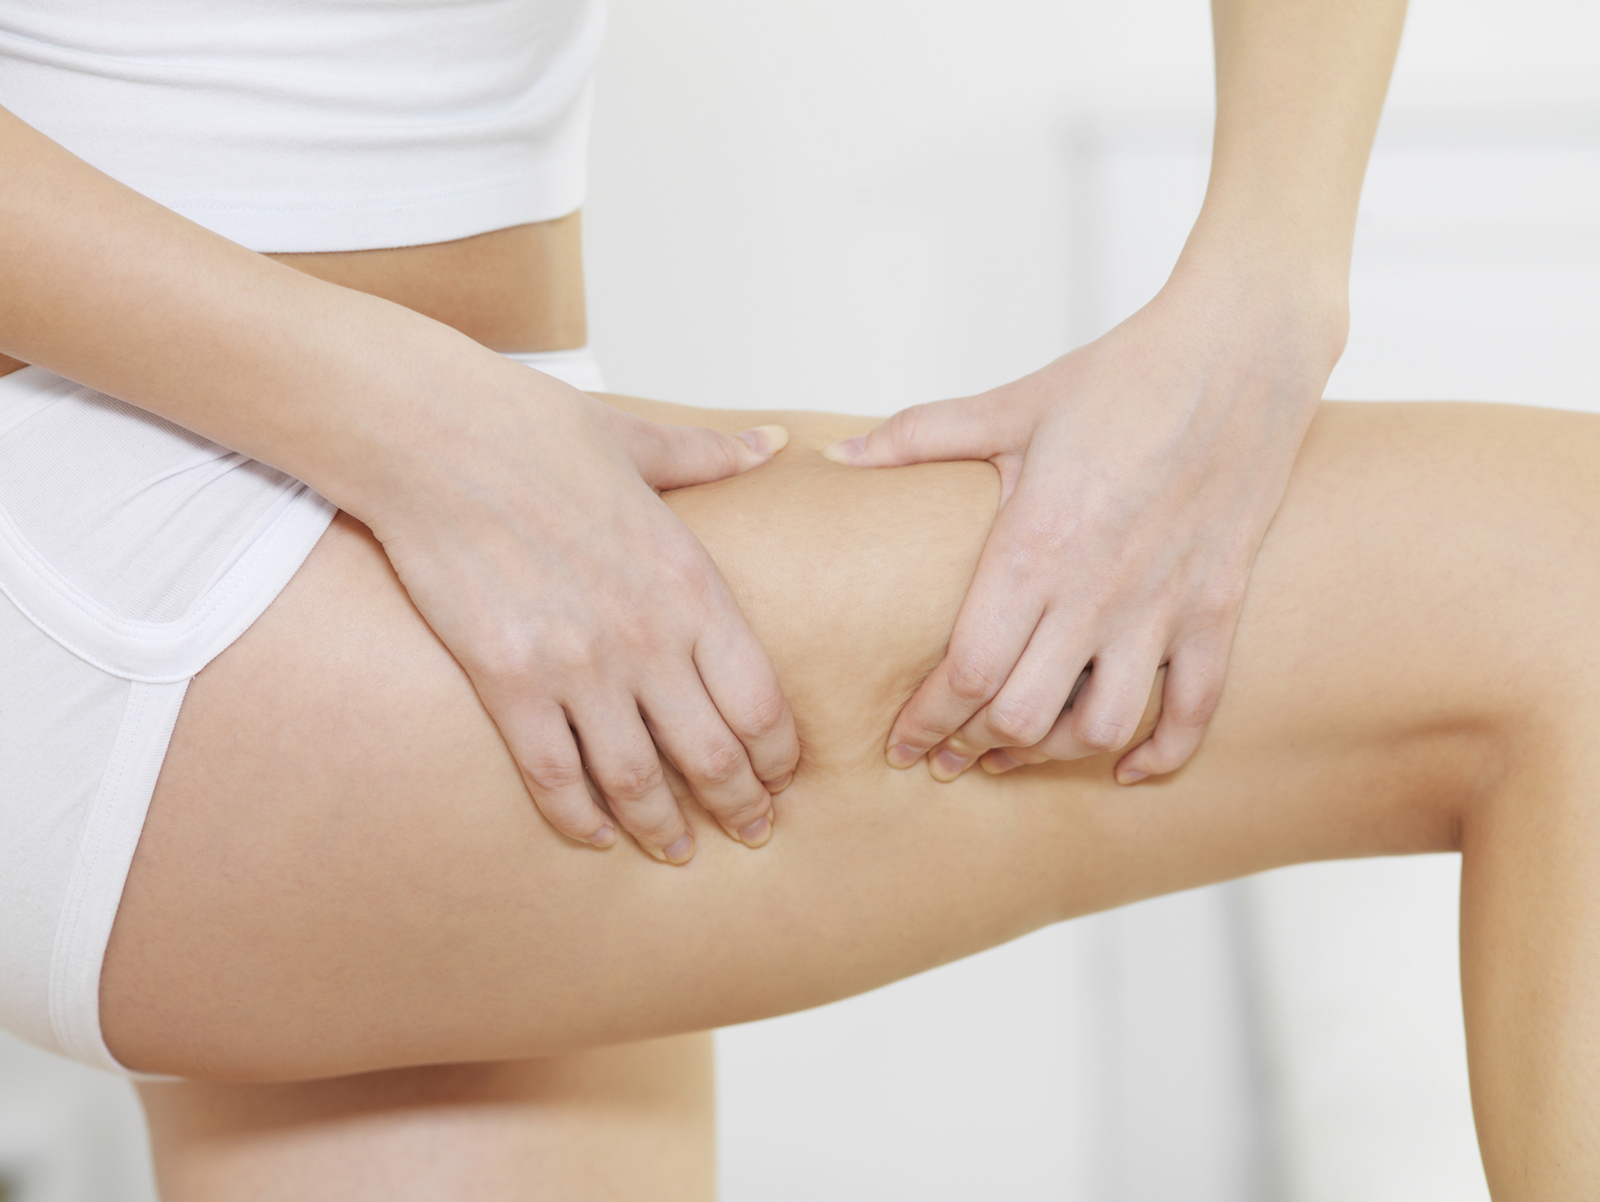 woman touching her beautiful, cellulite-free leg